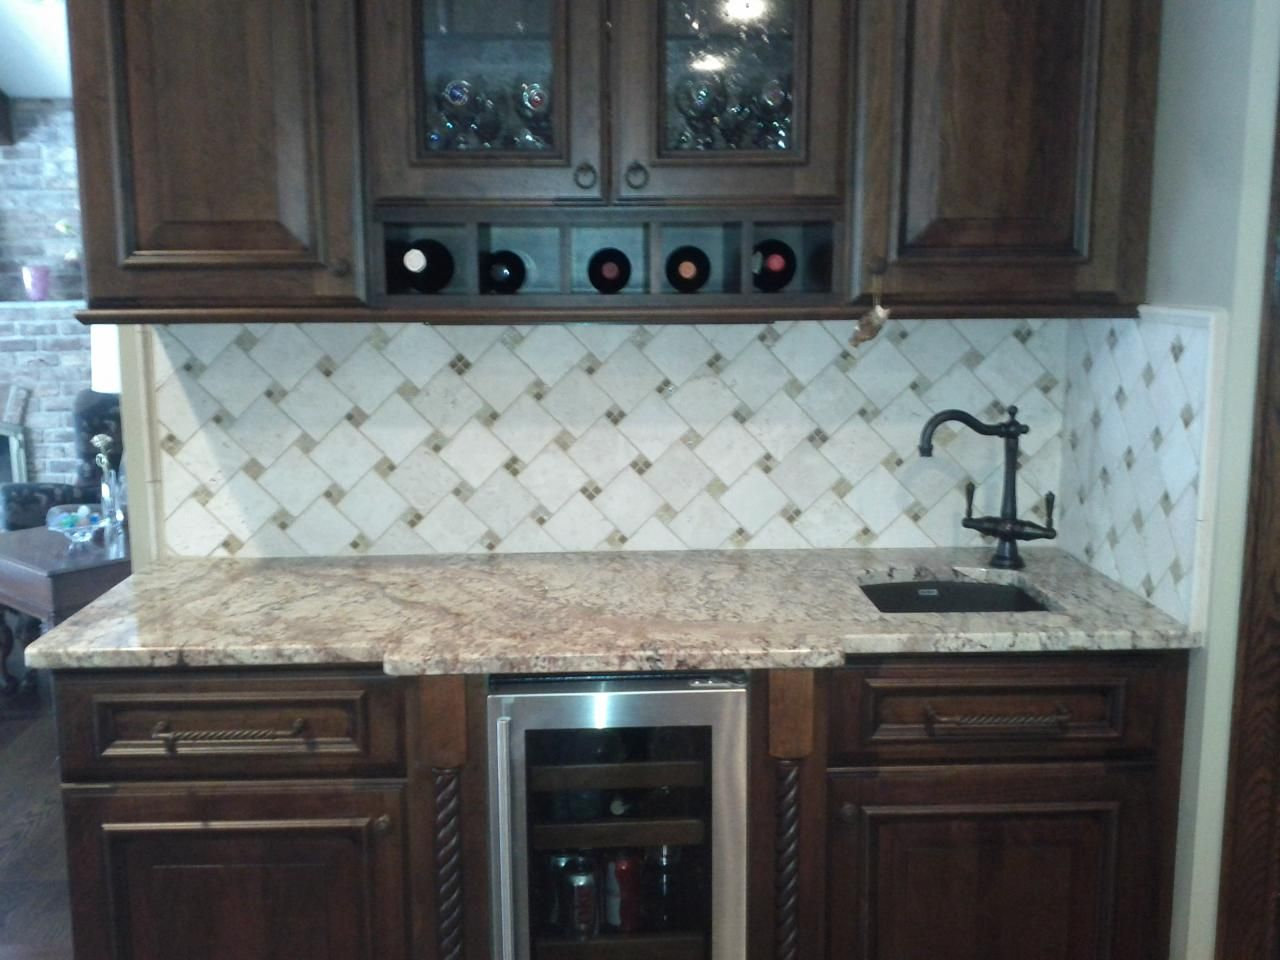 kitchen tile backslash backsplash tiles for kitchen 10 best images about kitchen tile backslash on Pinterest Kitchen backsplash design Marbles and Kitchen backsplash